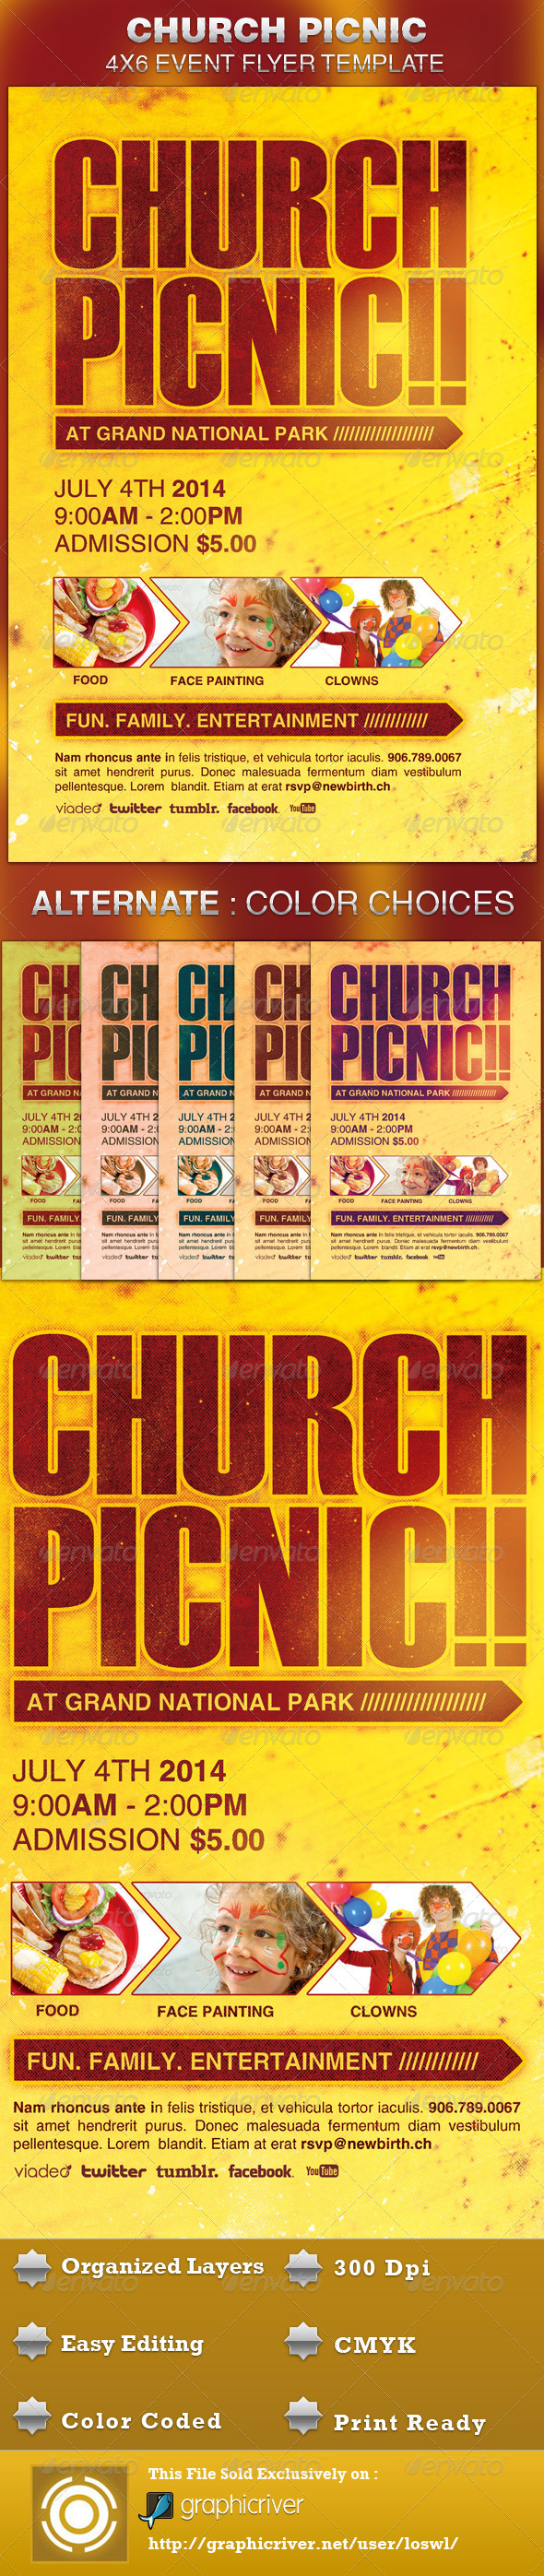 Church Picnic Flyer Template - Church Flyers